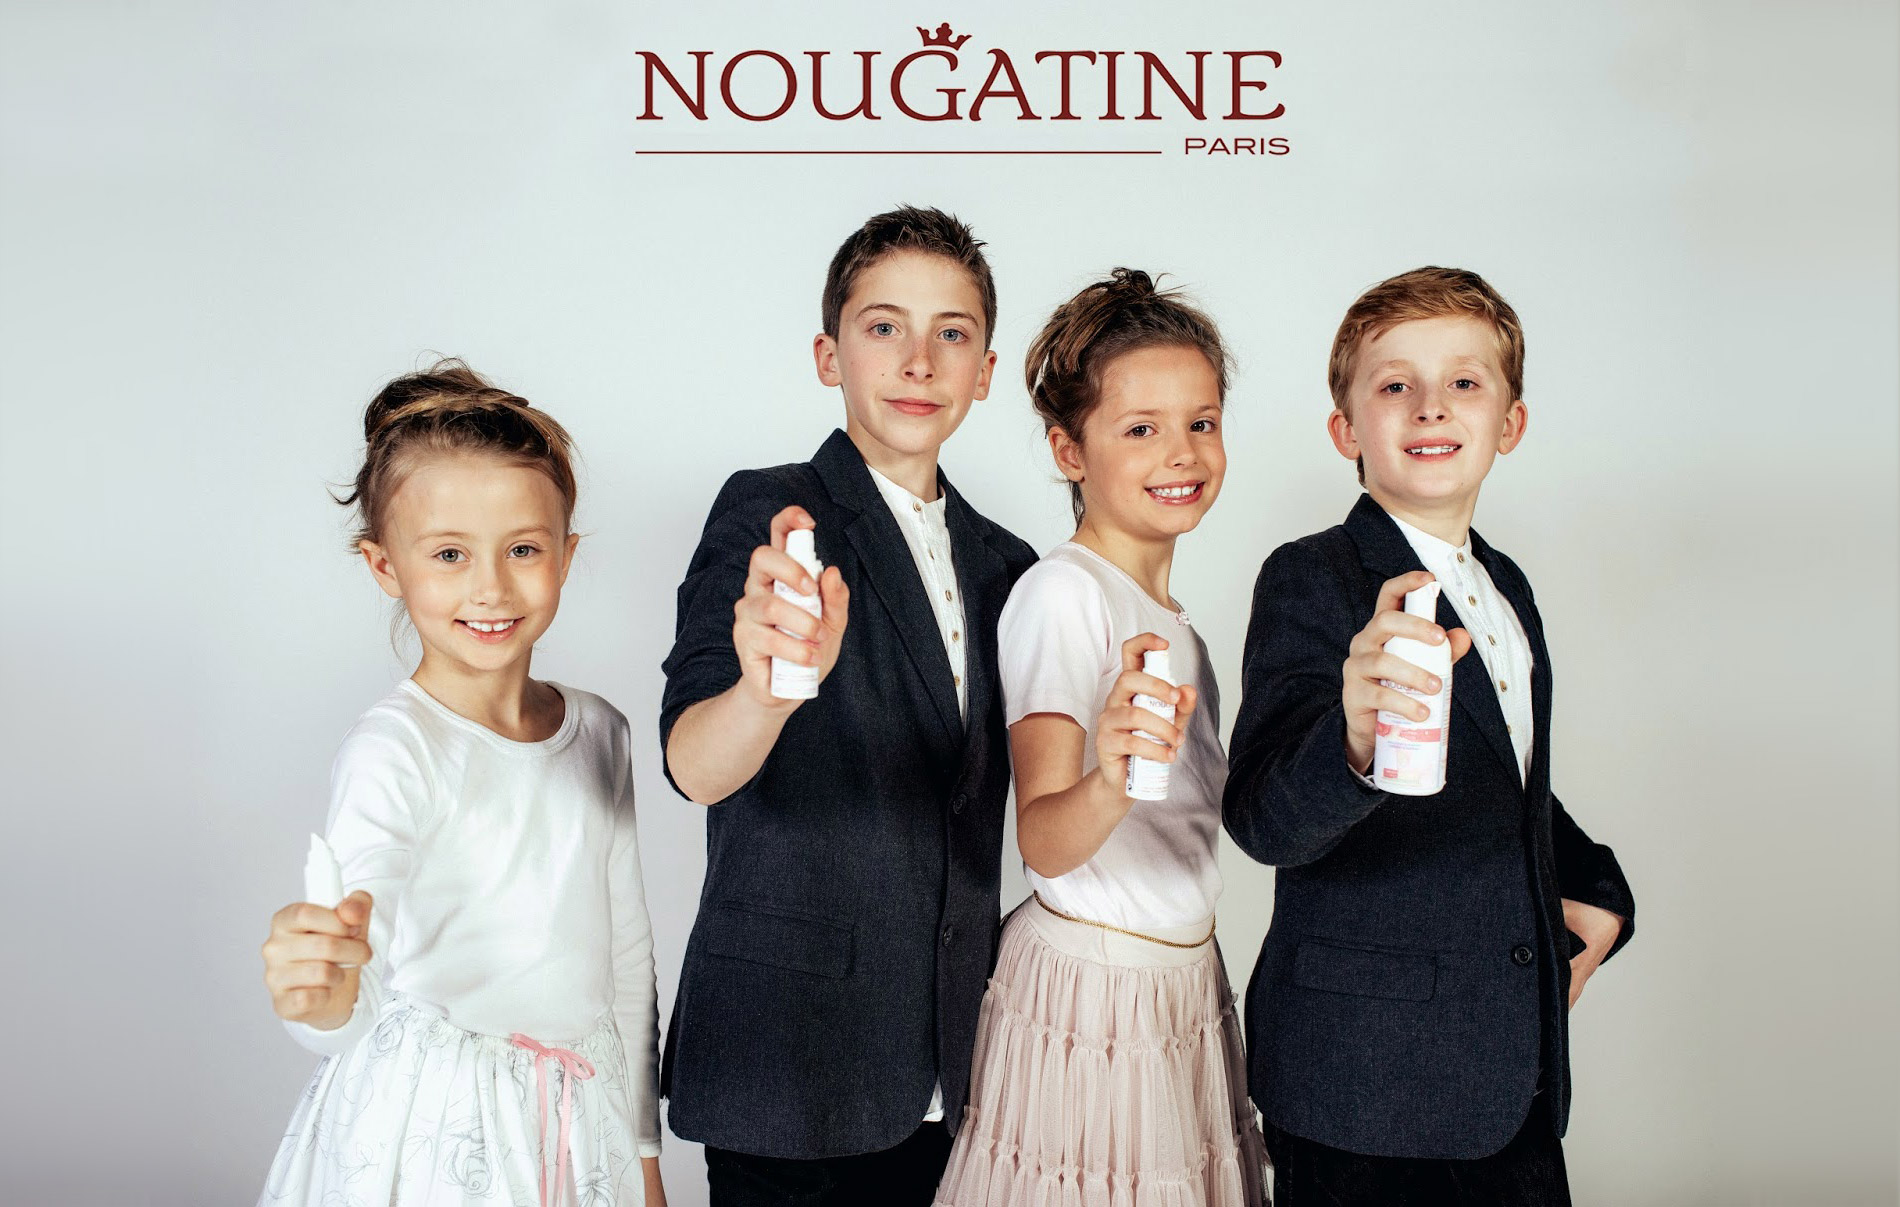 Nougatine Products to buy in Moncton NB